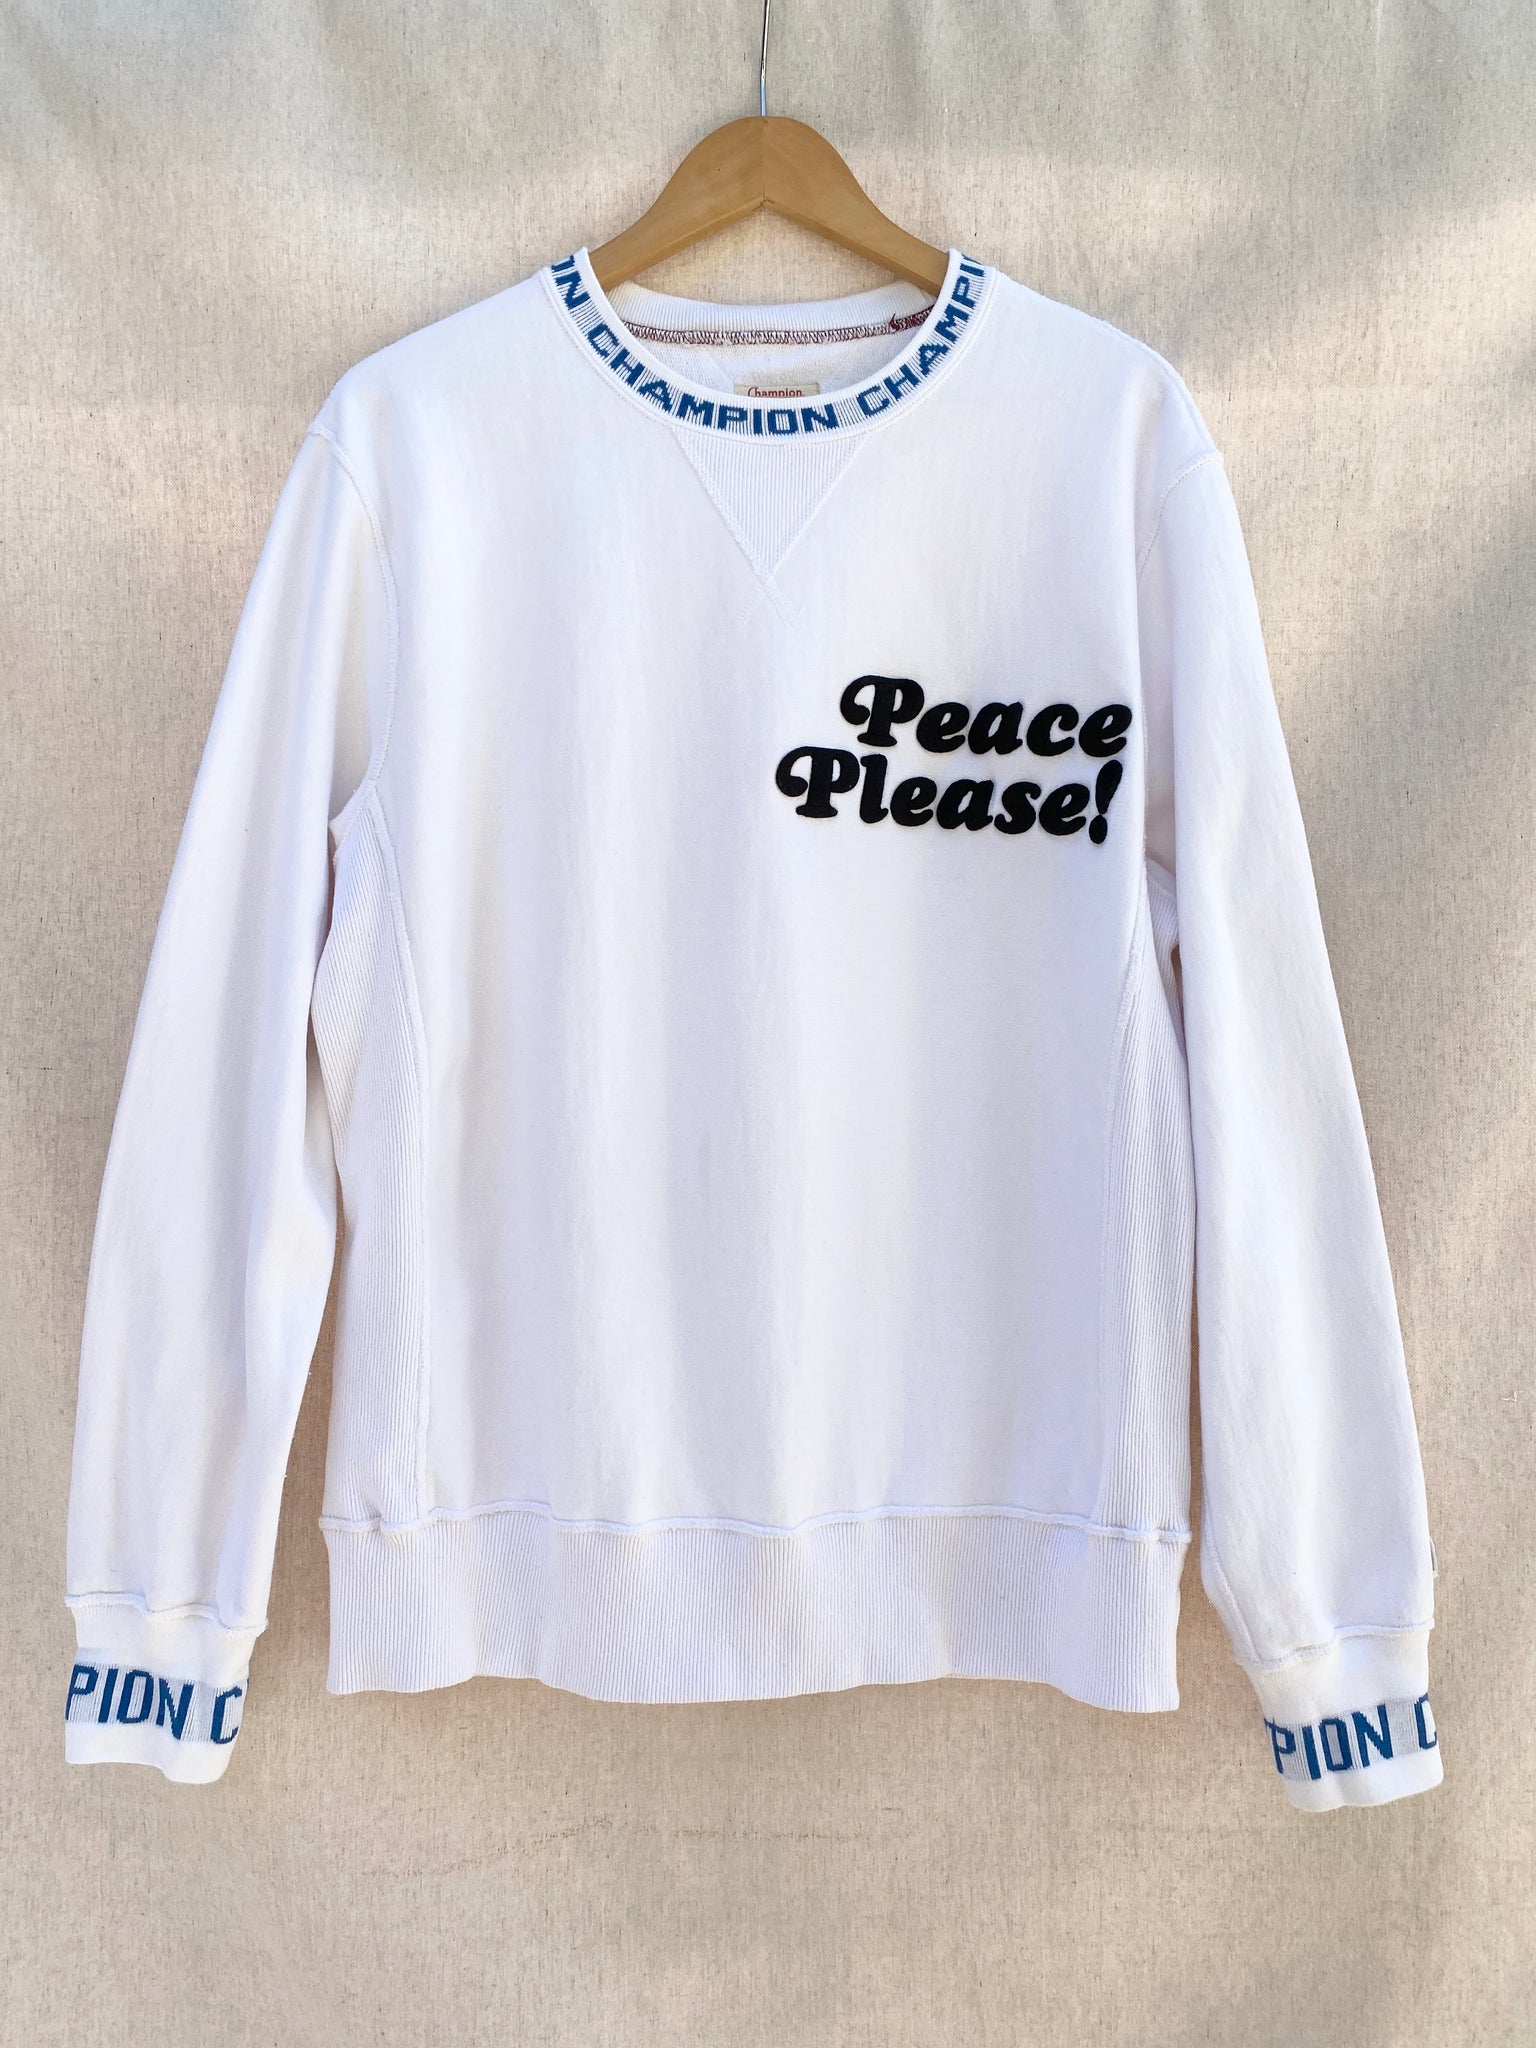 PEACE PLEASE! WHITE CHAMPION CREW NECK